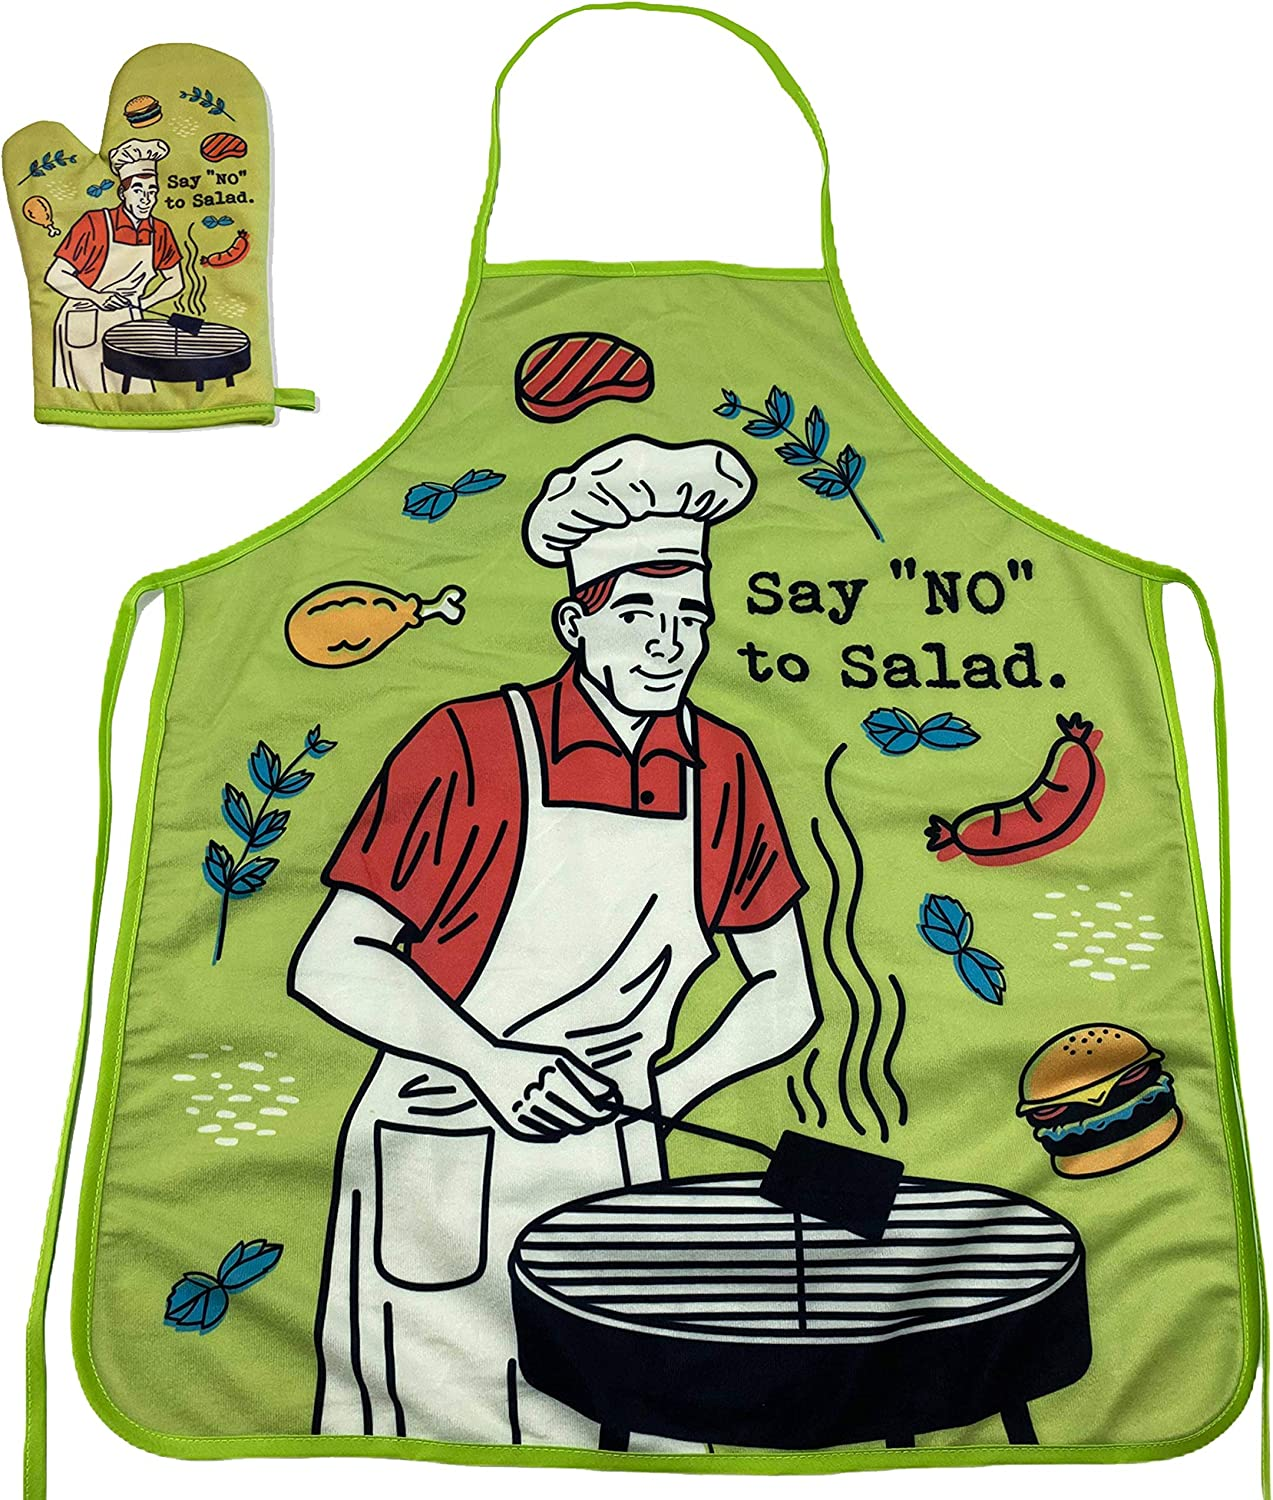 Crazy Dog T-Shirts Say No to Salad Funny Back Yard Bar-B-Que Meat Graphic Kitchen Accessories (Oven Mitt + Apron)